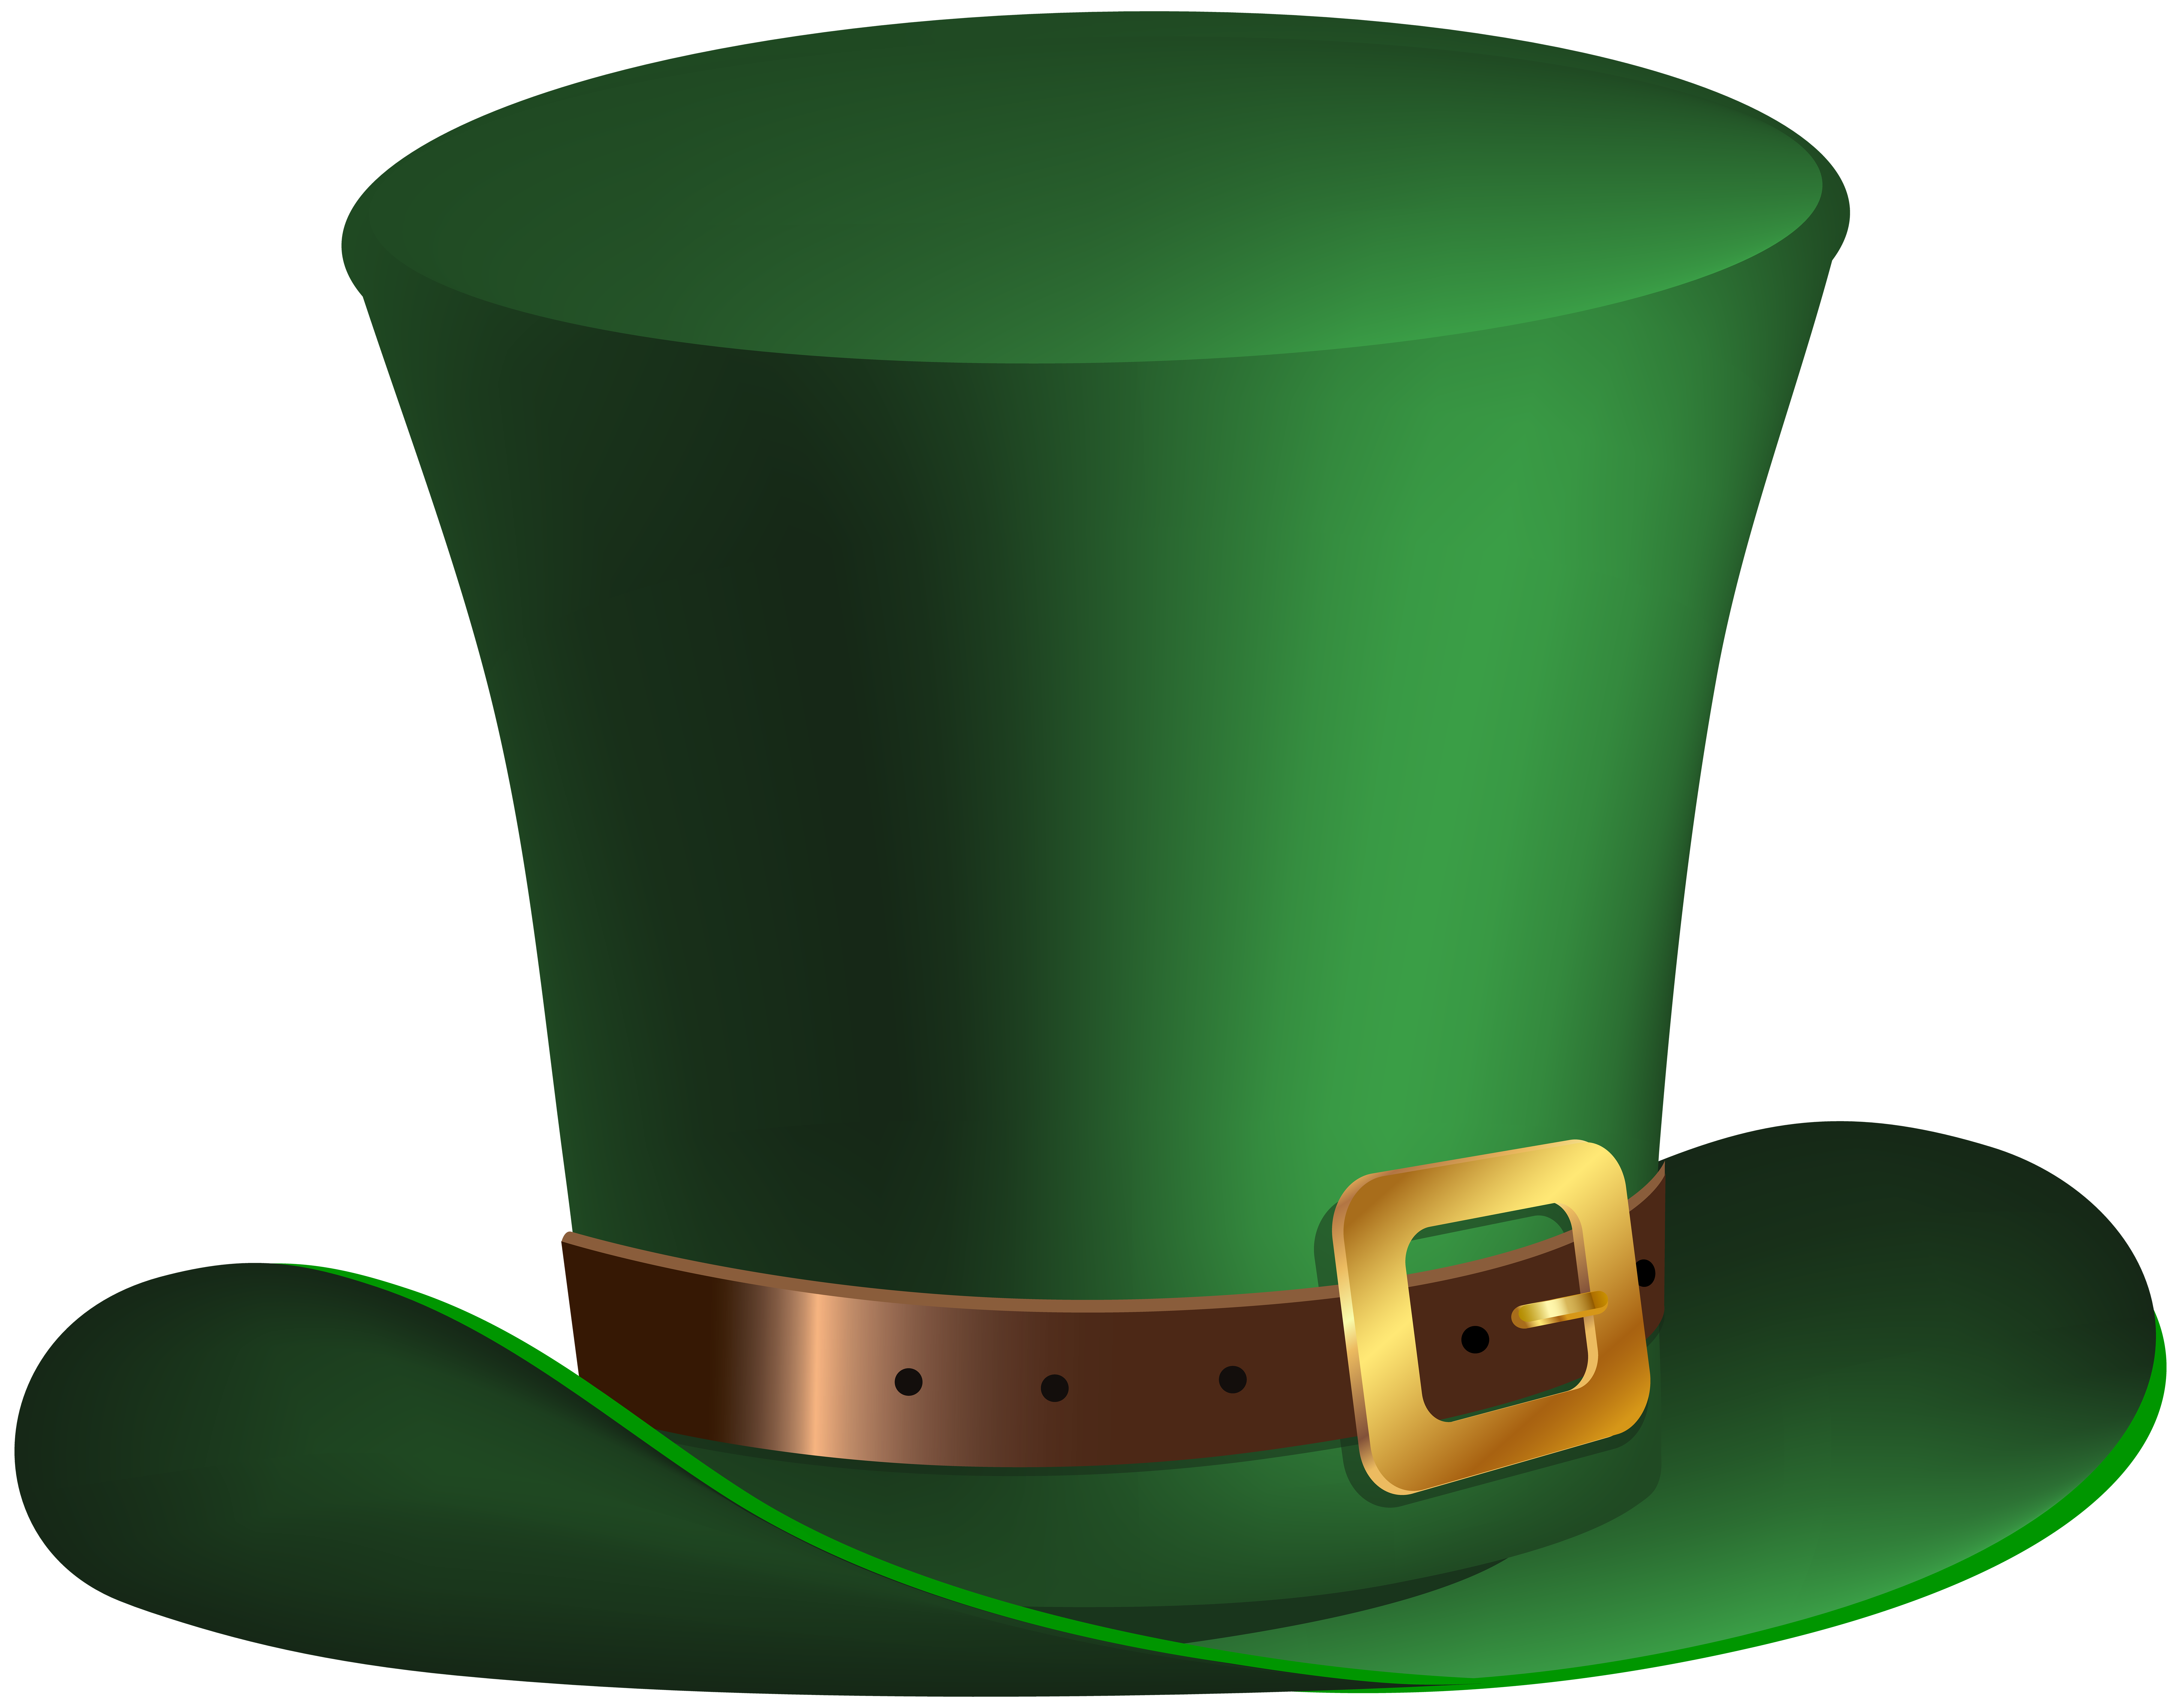 Costume clipart accessory. St patrick day green